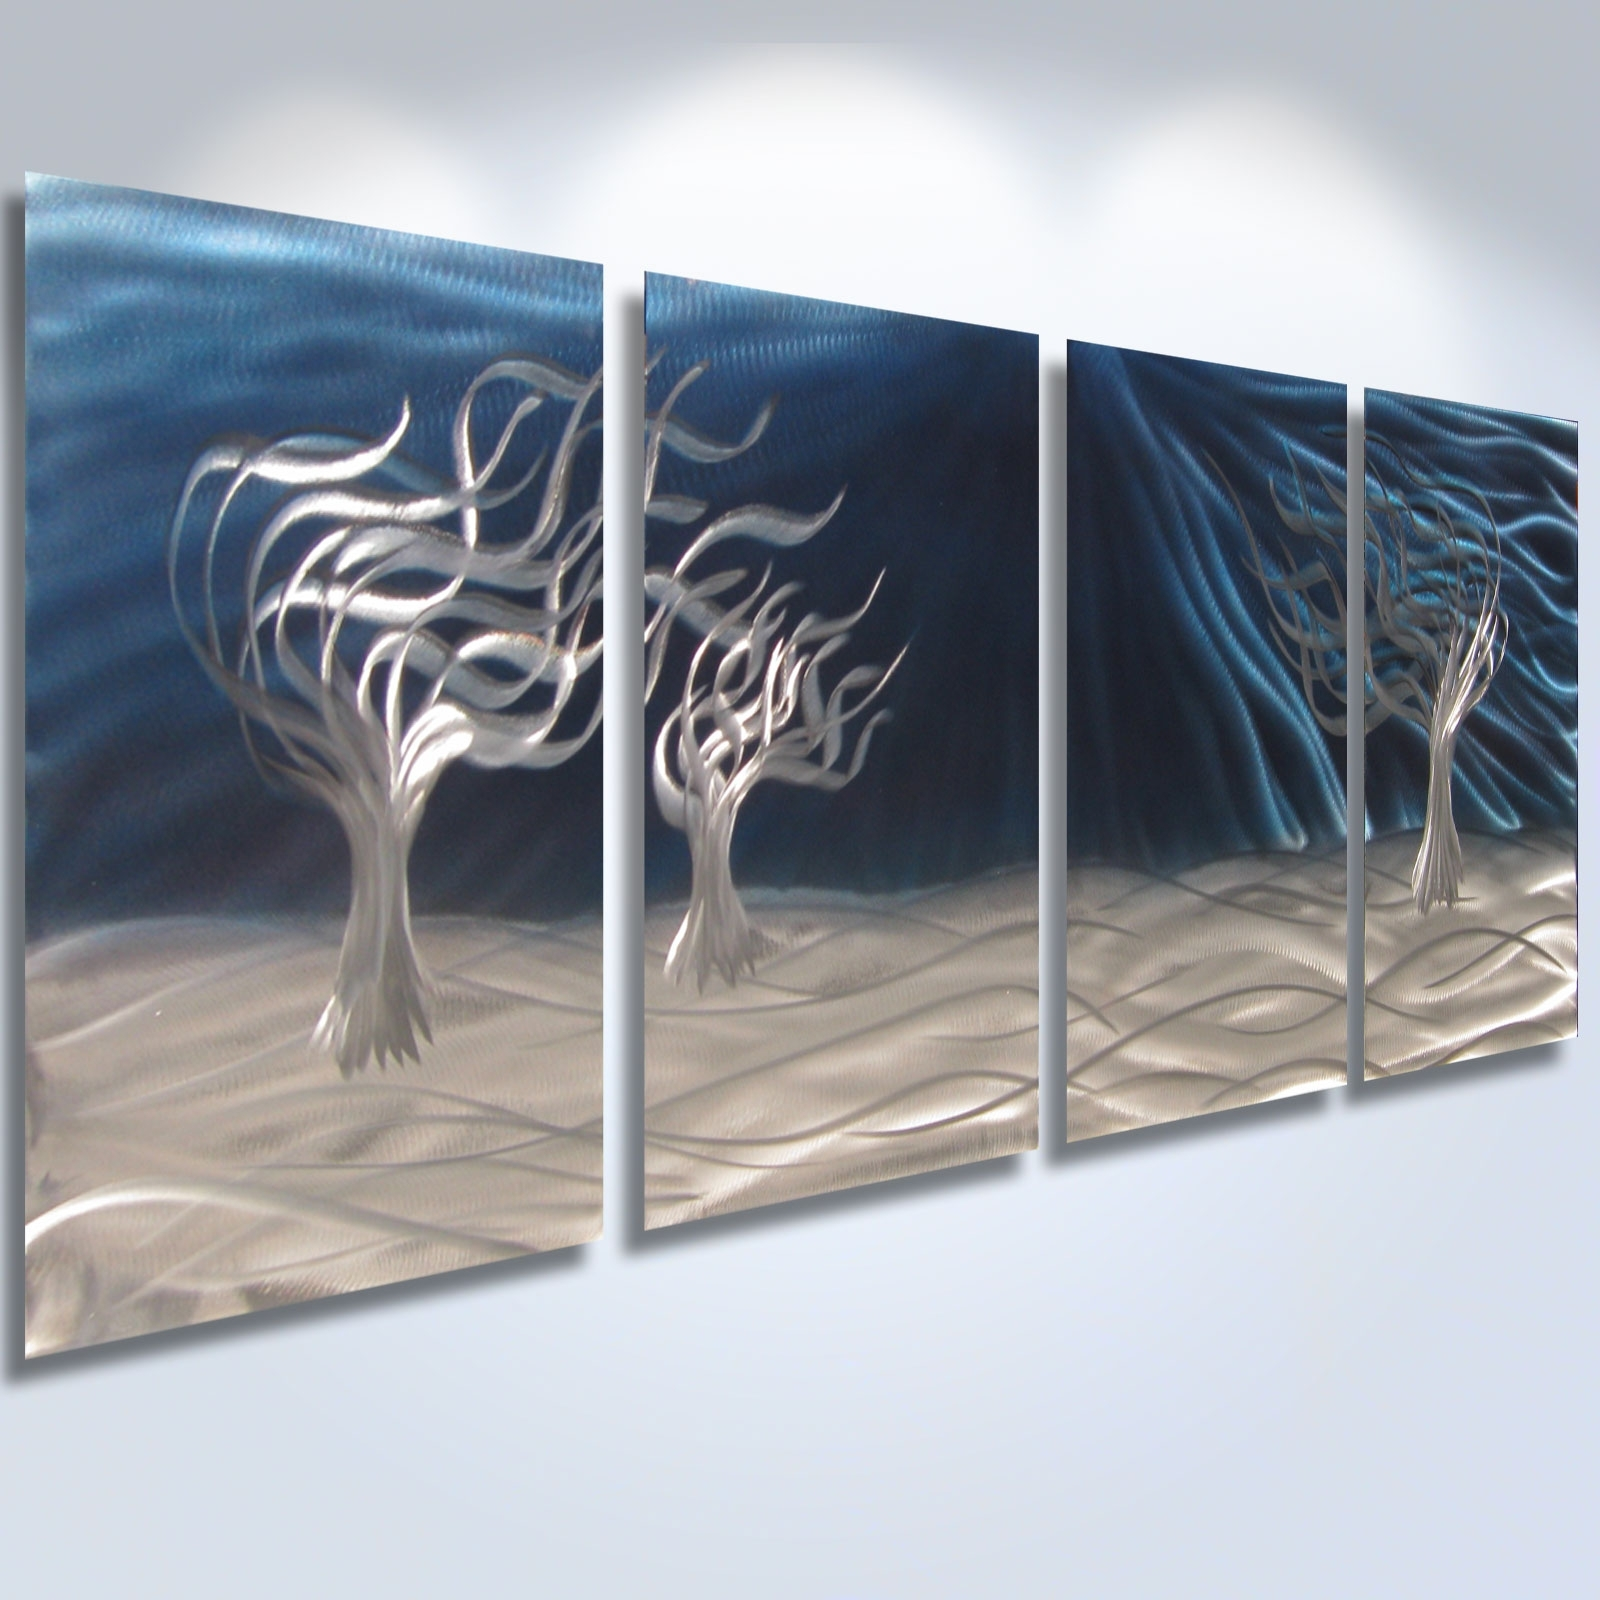 Abstract Metal Sculpture Wall Art Within 2018 3 Trees Blue – Abstract Metal Wall Art Contemporary Modern Decor (View 4 of 15)